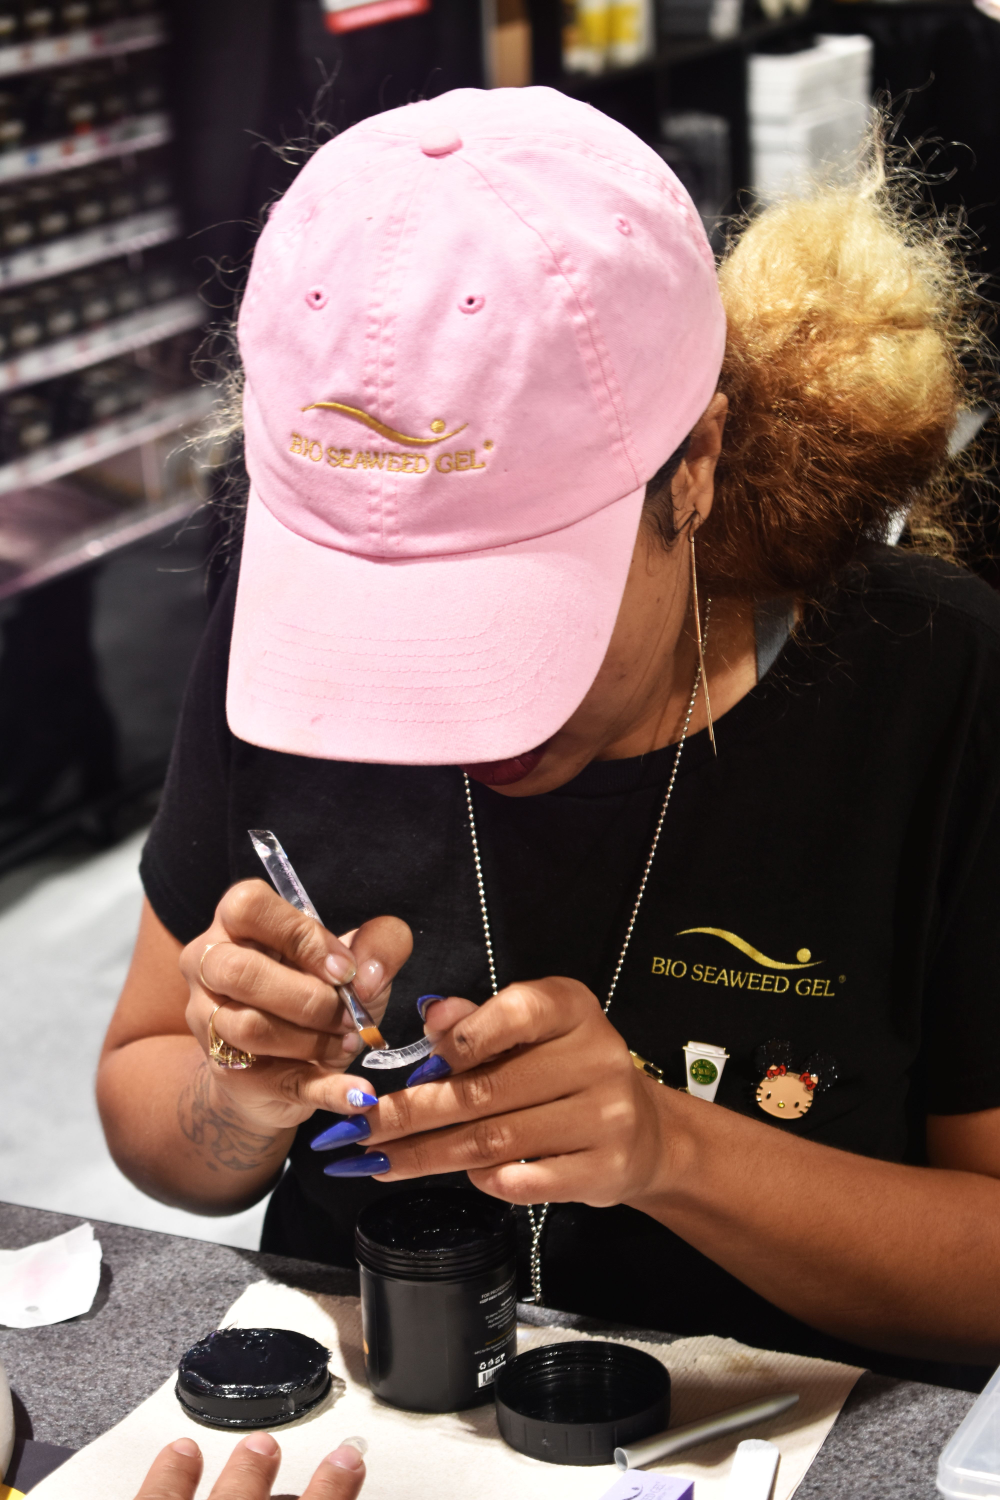 <p>An educator works on a design at the Bio Seaweed Gel booth</p>